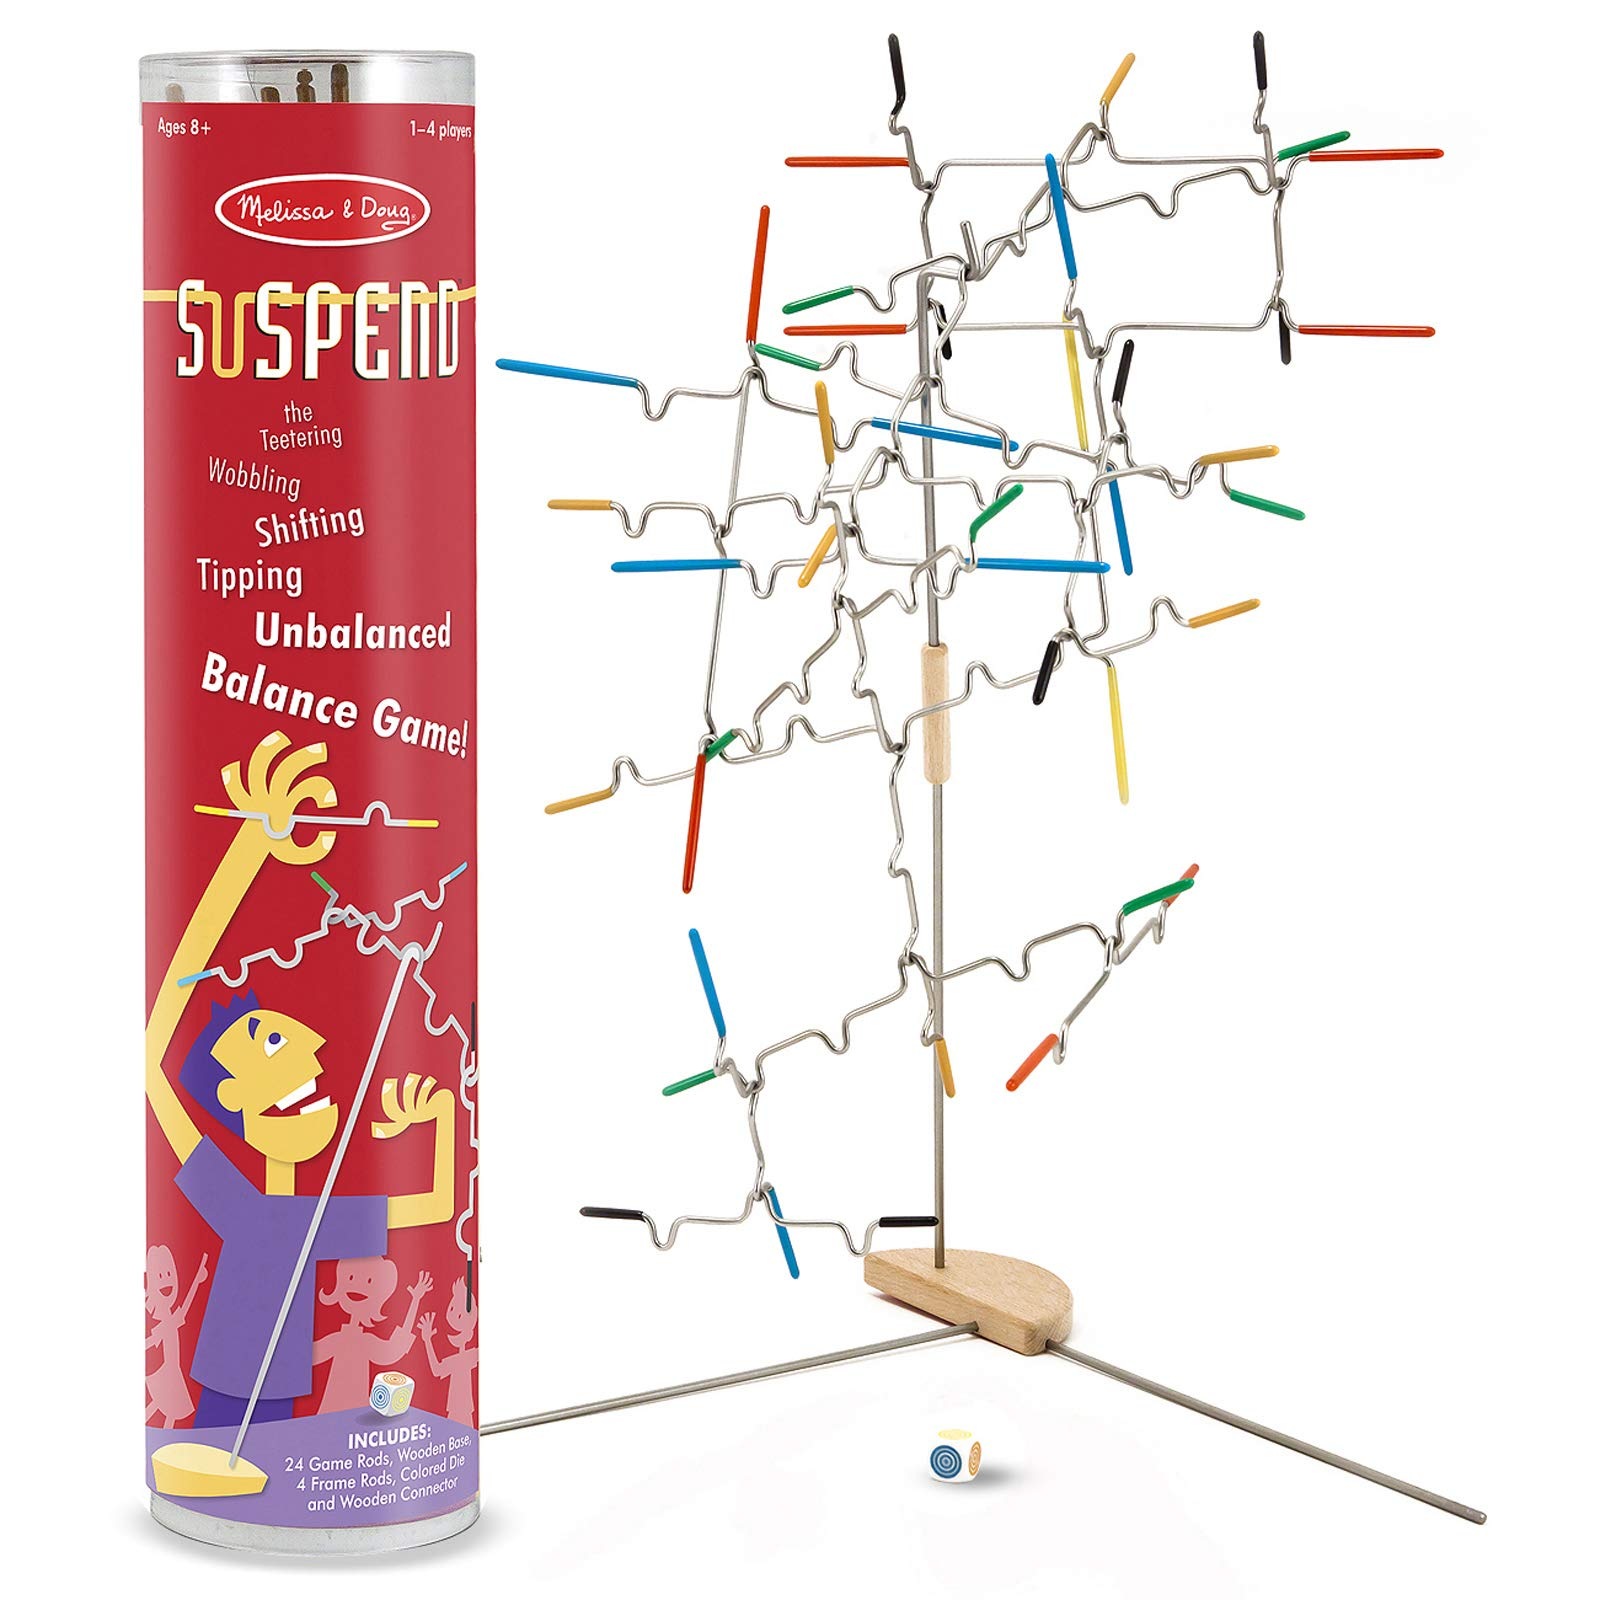 Melissa & Doug Suspend Family Game, Classic Games, Exciting Balancing Game, Develops Hand-Eye Coordination, 12.5'' H x 2.8'' W x 2.8'' L by Melissa & Doug